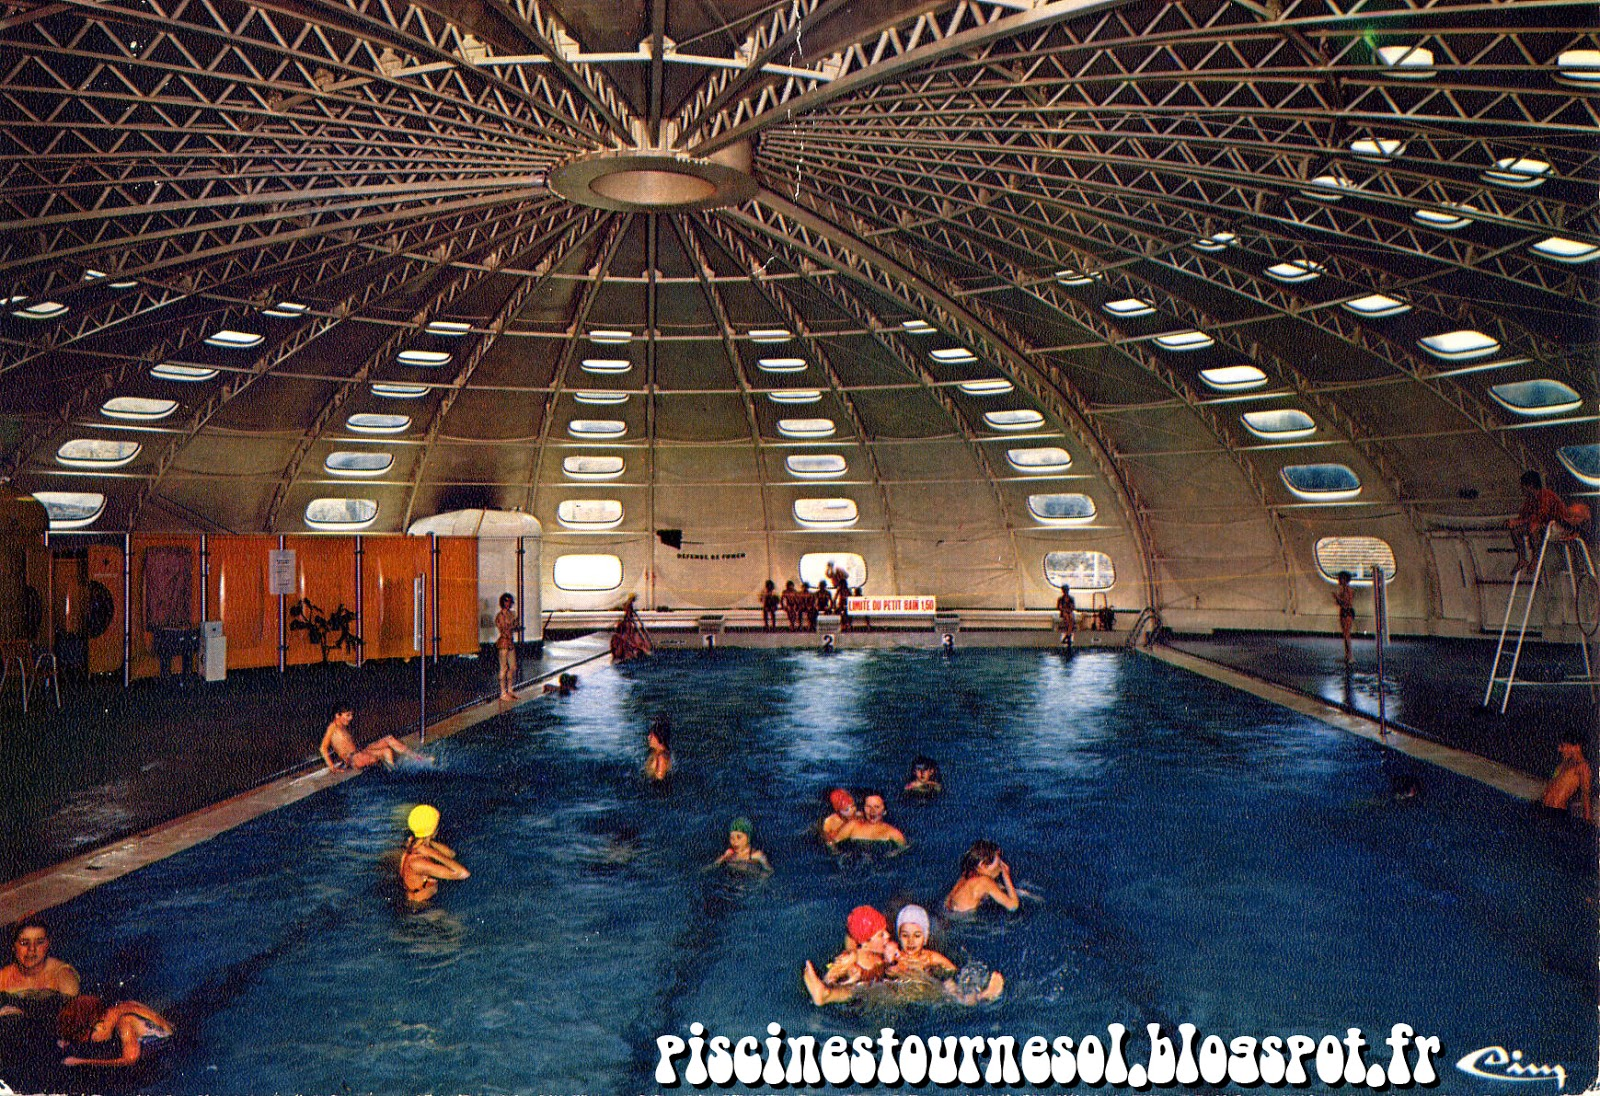 Piscines tournesol piscine tournesol cours la ville for Piscine tournesol